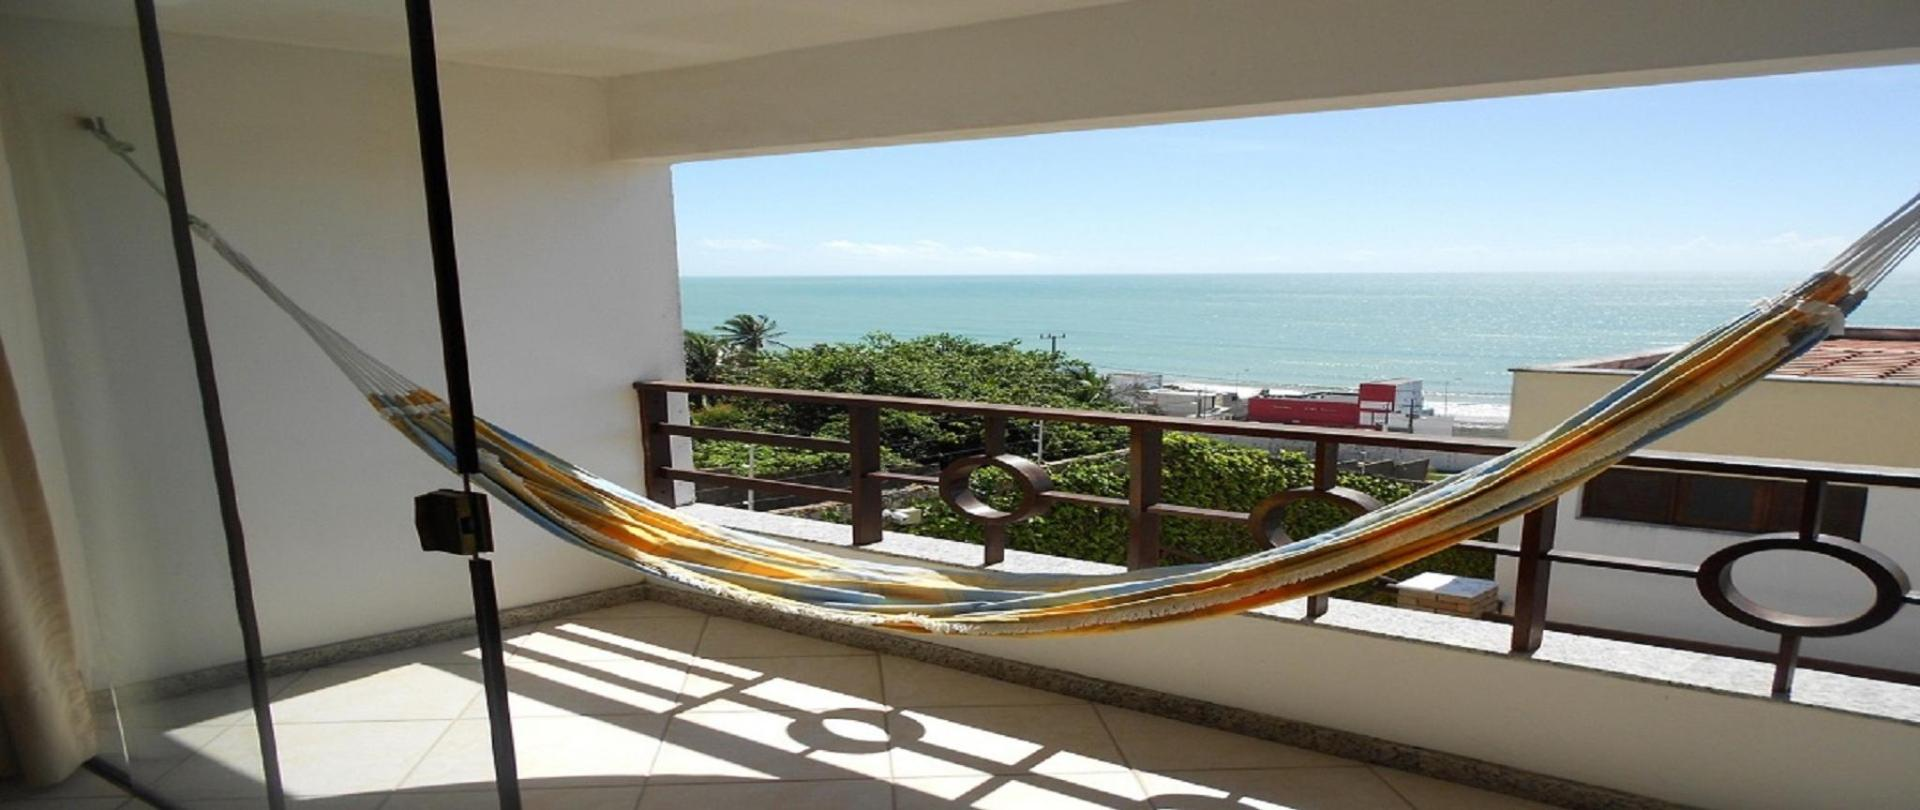 Flat com varanda privativa  vista fabulosa frente mar e Morro do Careca